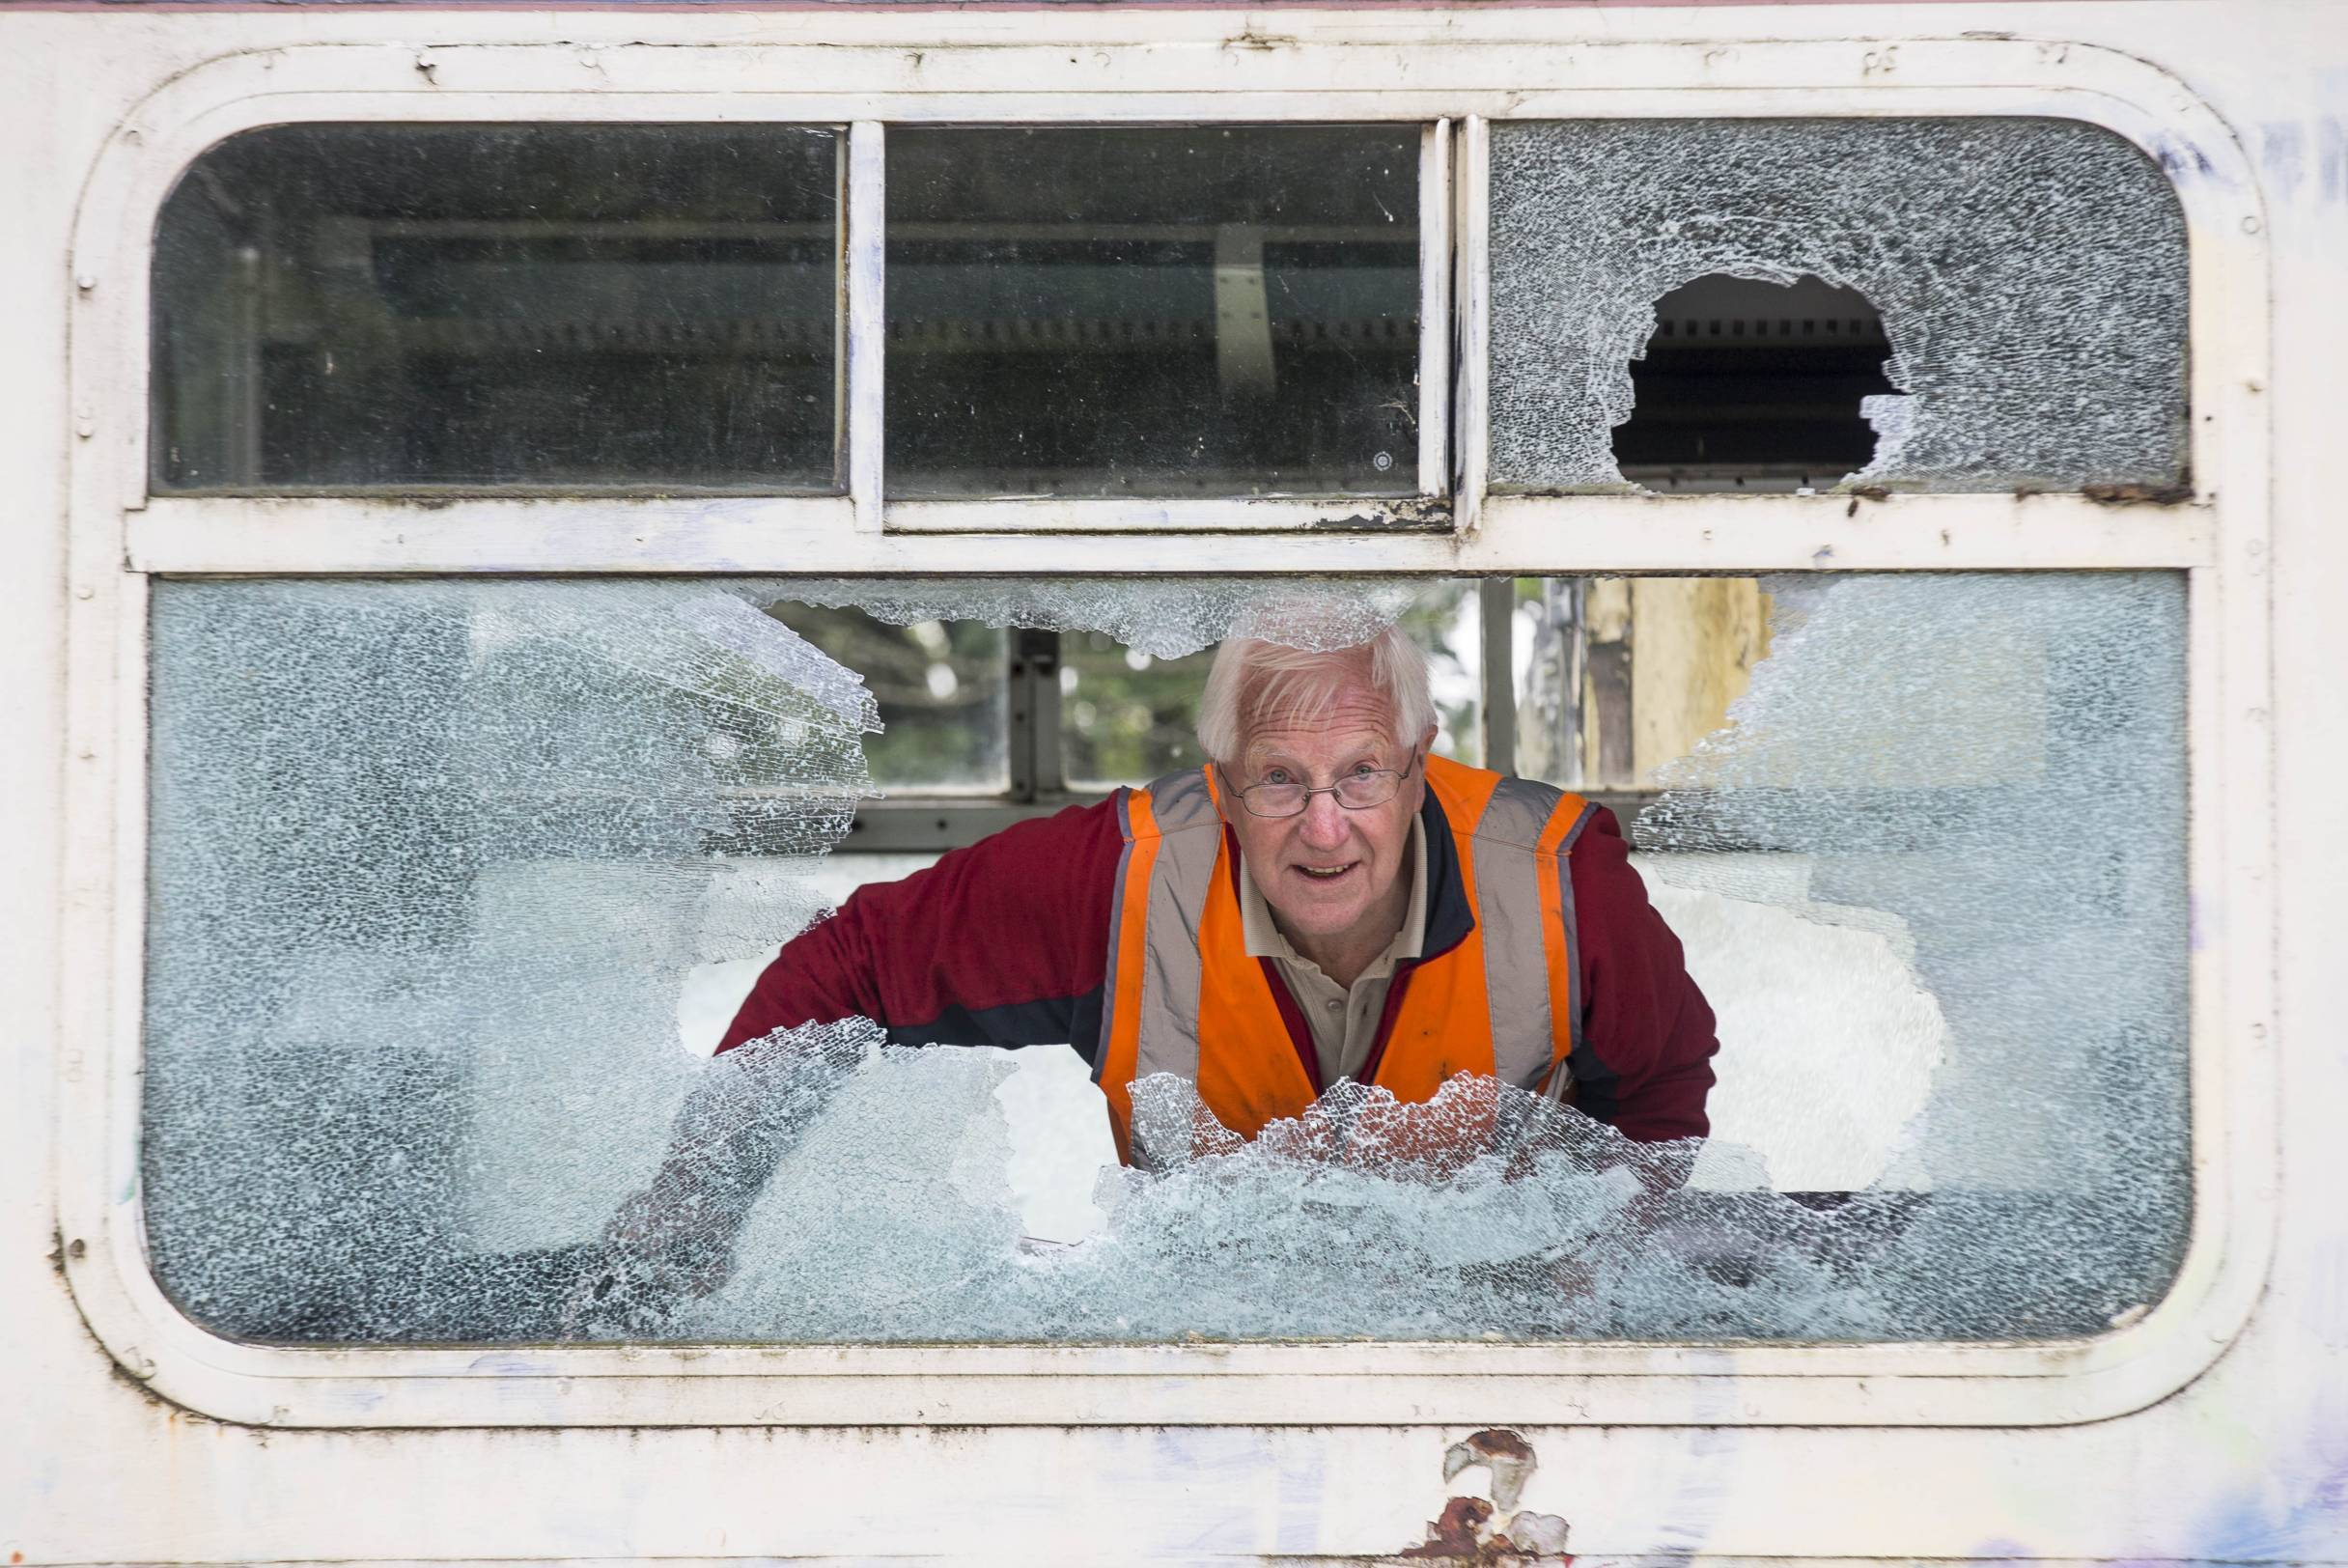 Around £10,000 of damage has been caused to a carriage at the Deeside Railway.